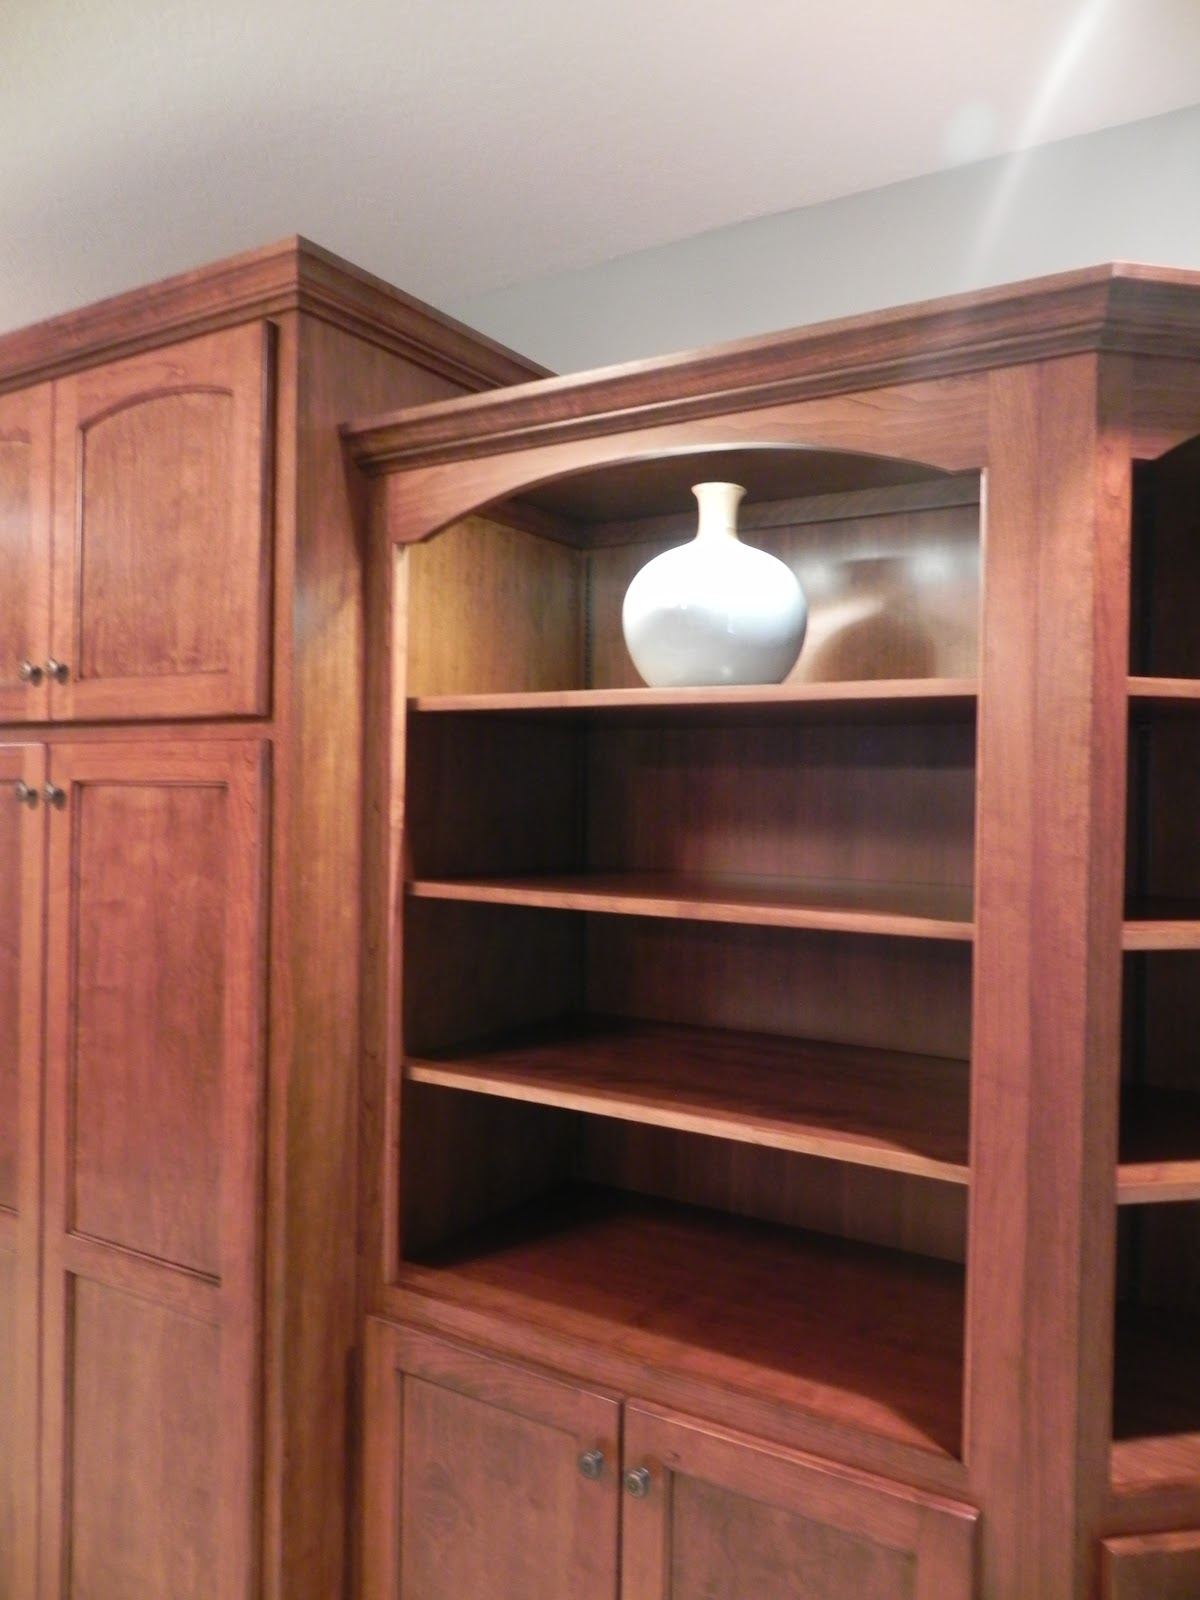 Adkisson39s Cabinets Cherry Bookcases And Alder Wood